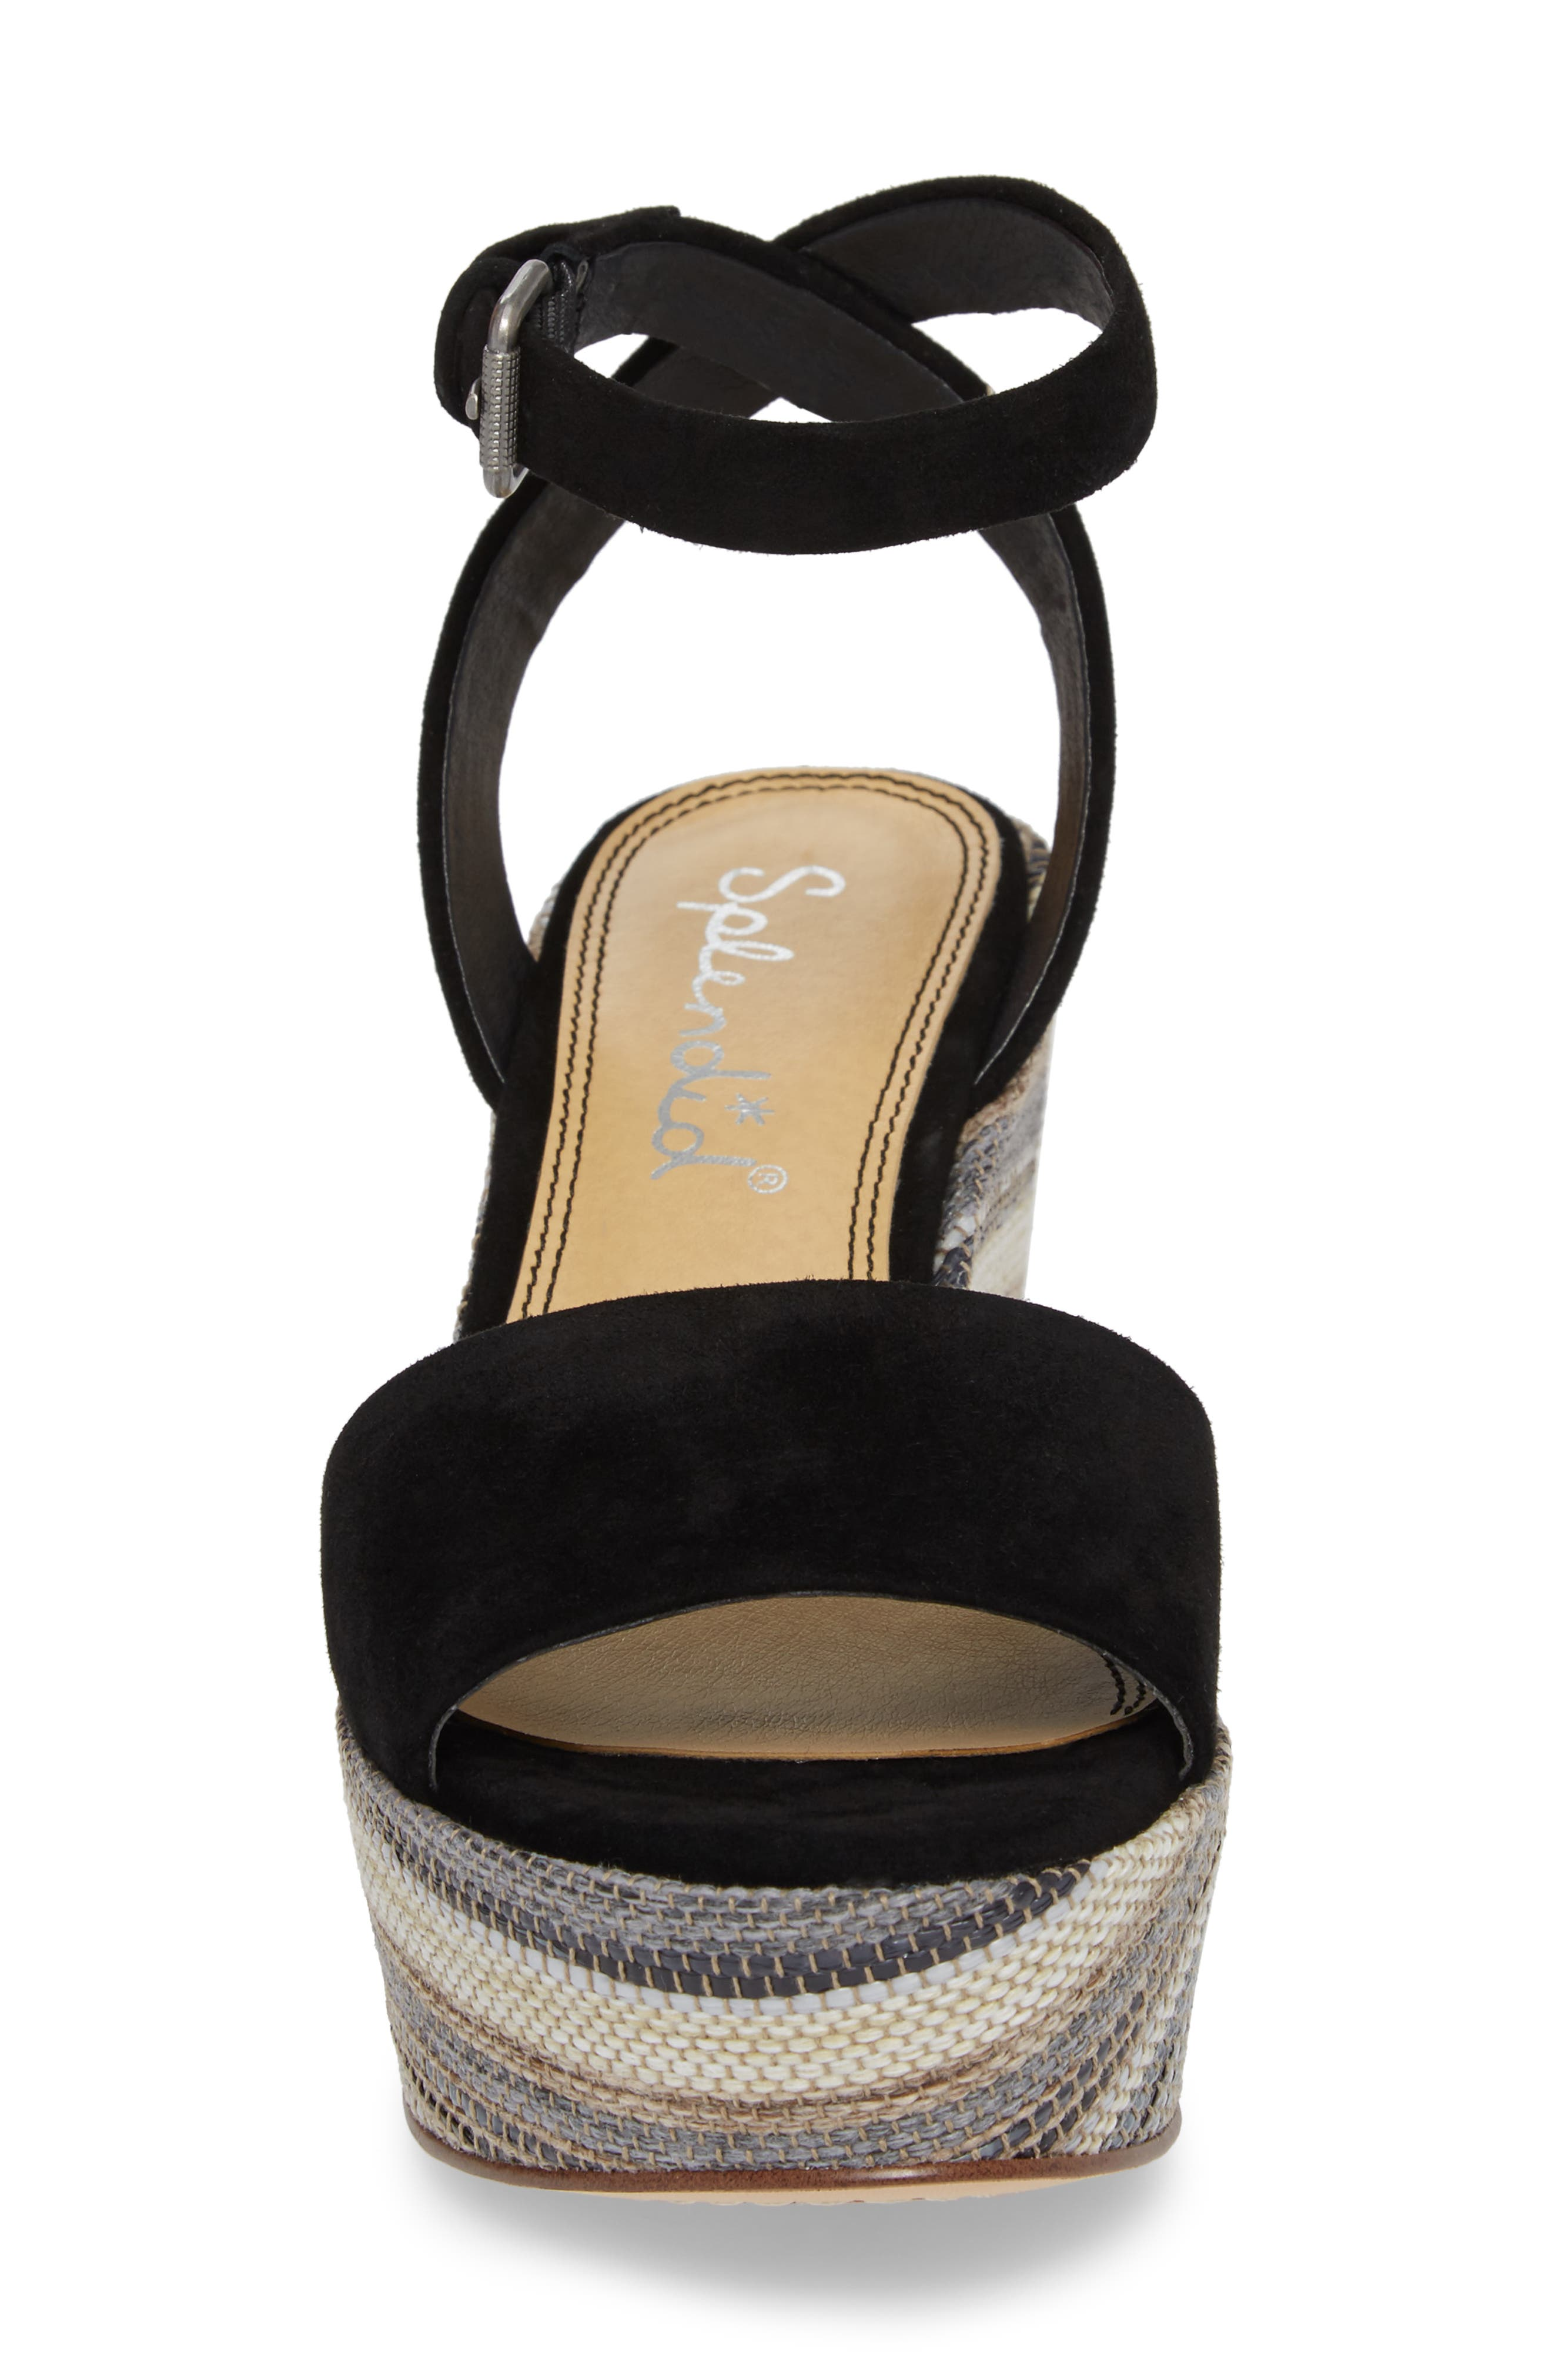 Felix Platform Wedge Sandal,                             Alternate thumbnail 4, color,                             Black Multi Suede